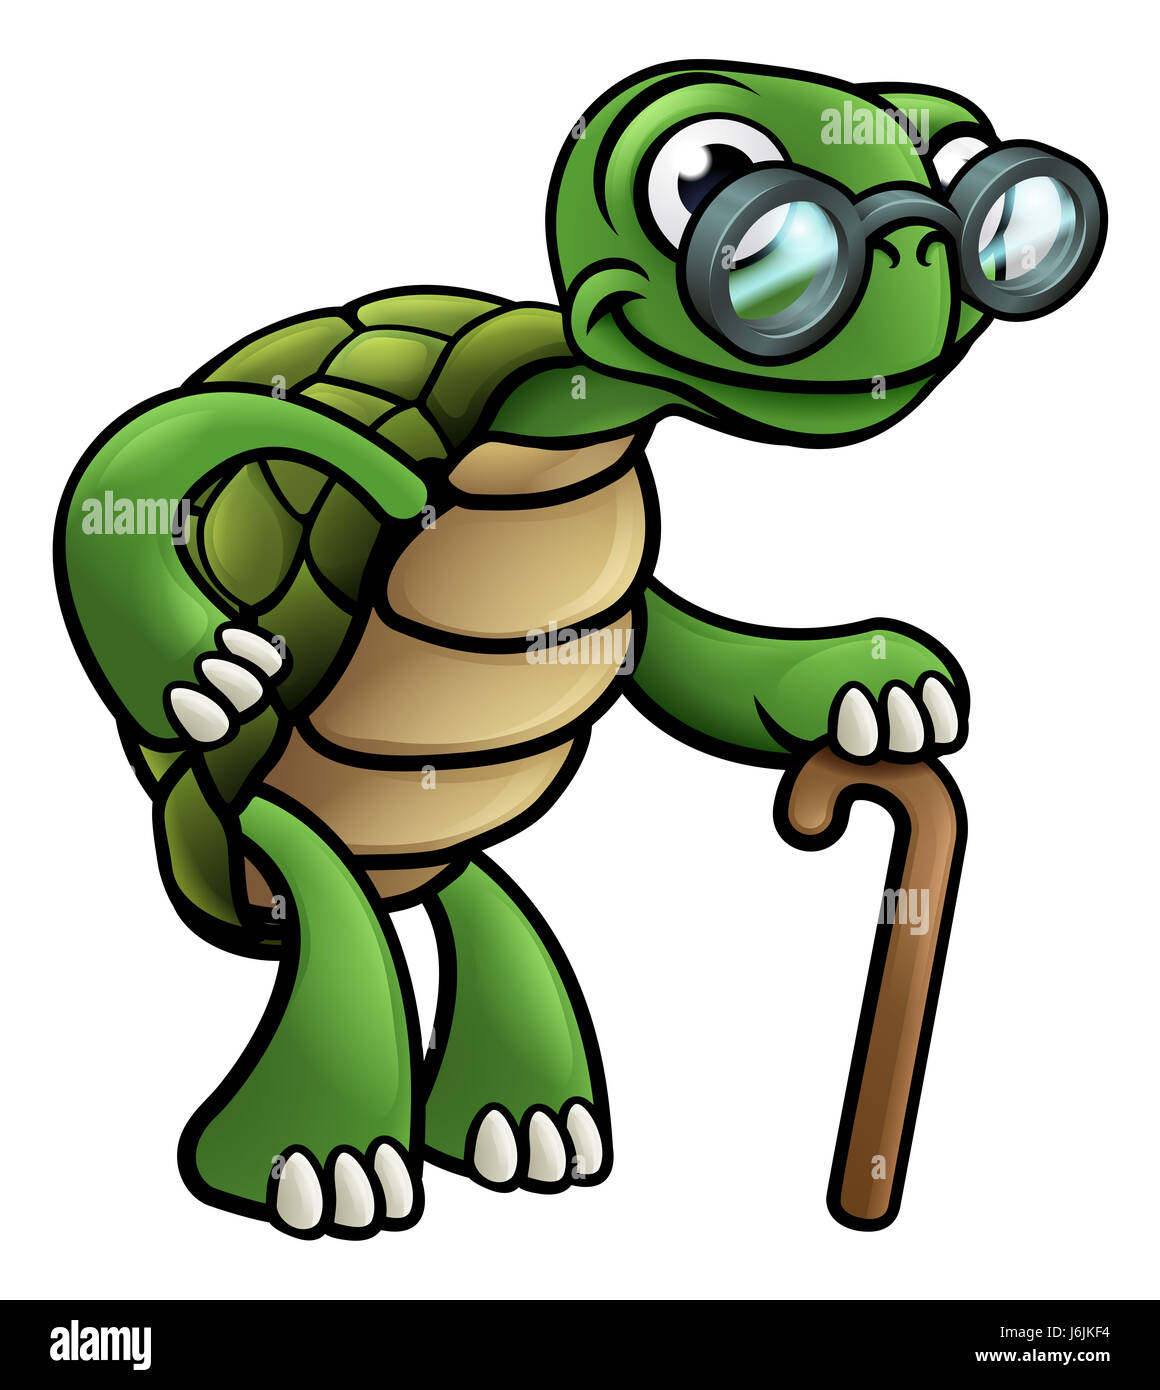 An elderly senior tortoise cartoon character with